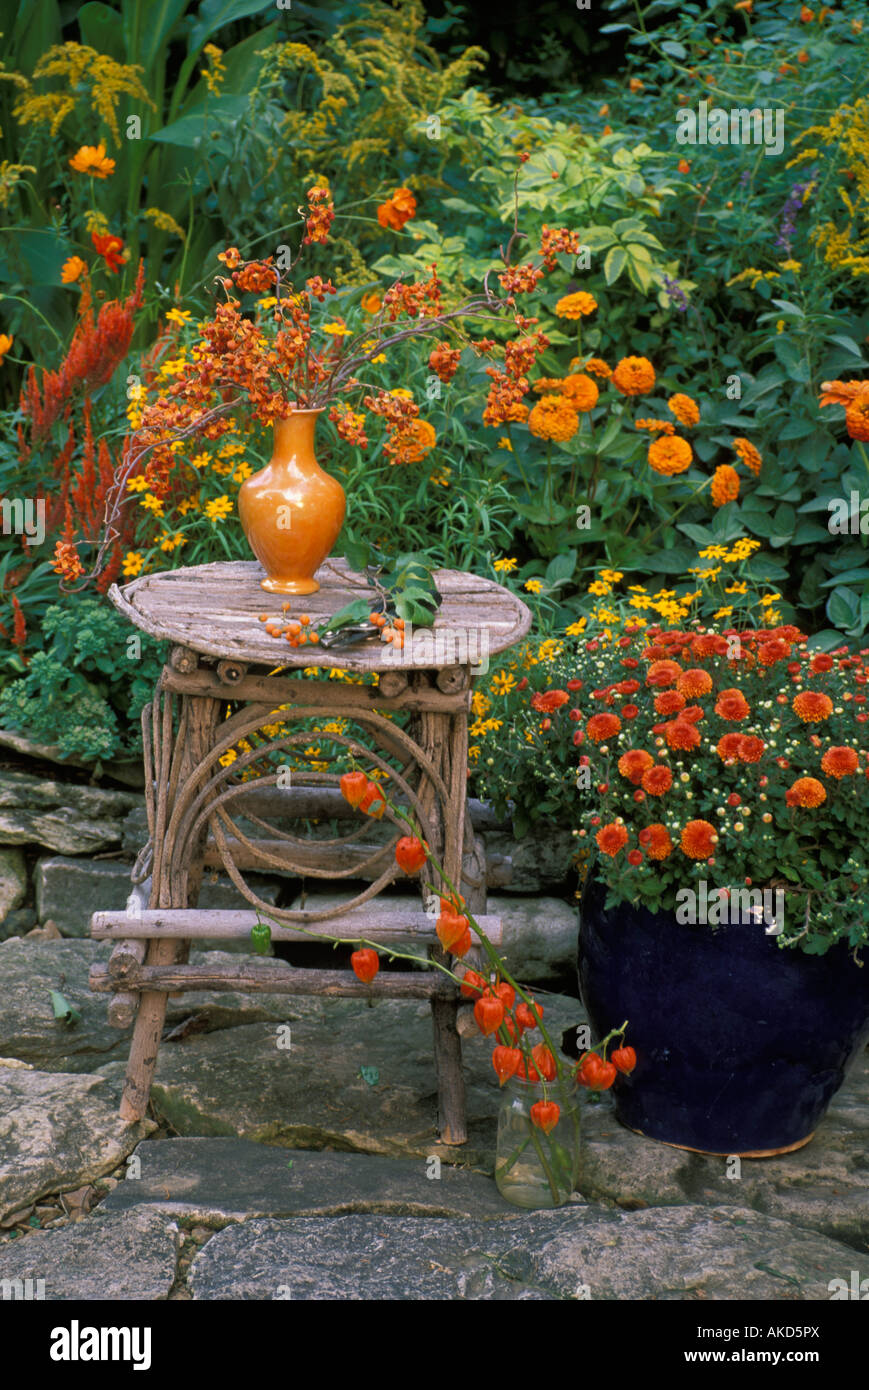 herbst tee garten orange vase mit trockenblumen lampions. Black Bedroom Furniture Sets. Home Design Ideas